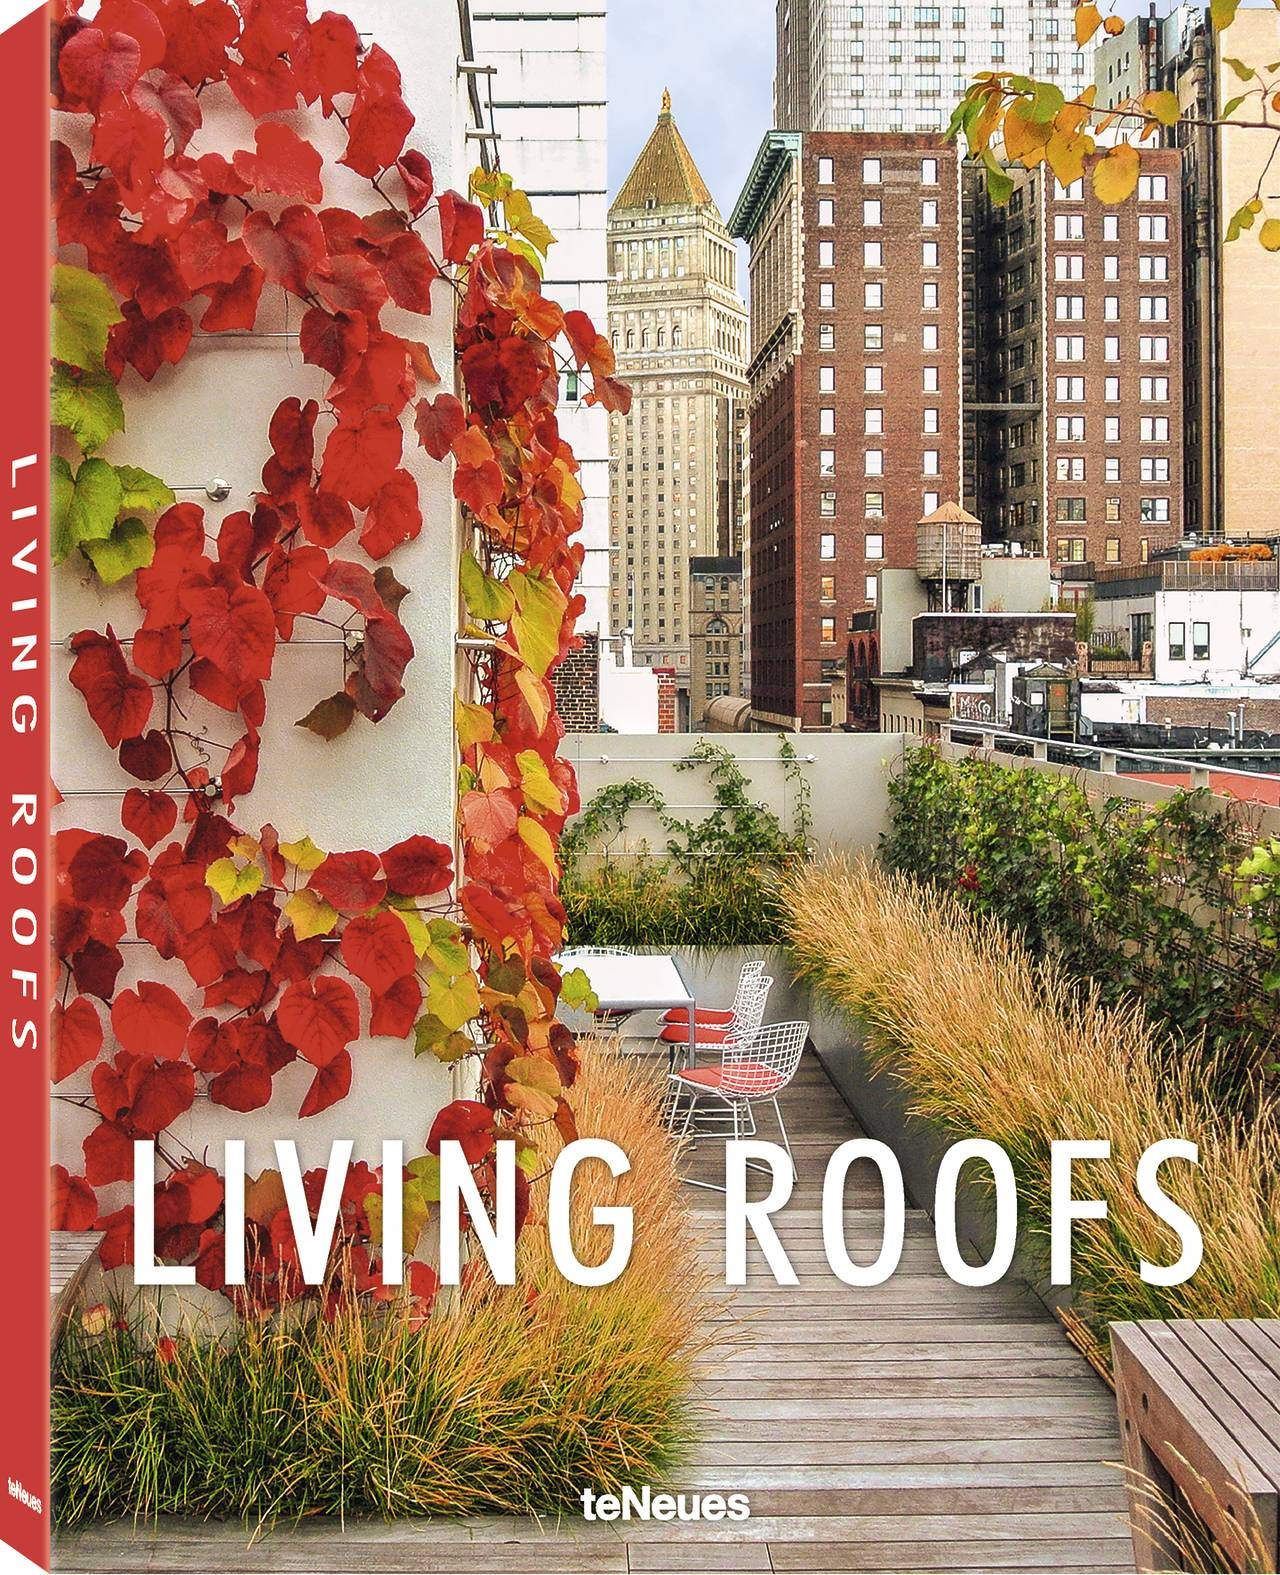 © Living Roofs, published by teNeues, www.teneues.com, Tribeca Penthouse Garden © Nikolas Koenig Photography, courtesy of HMWhite, Designer: HMWhite